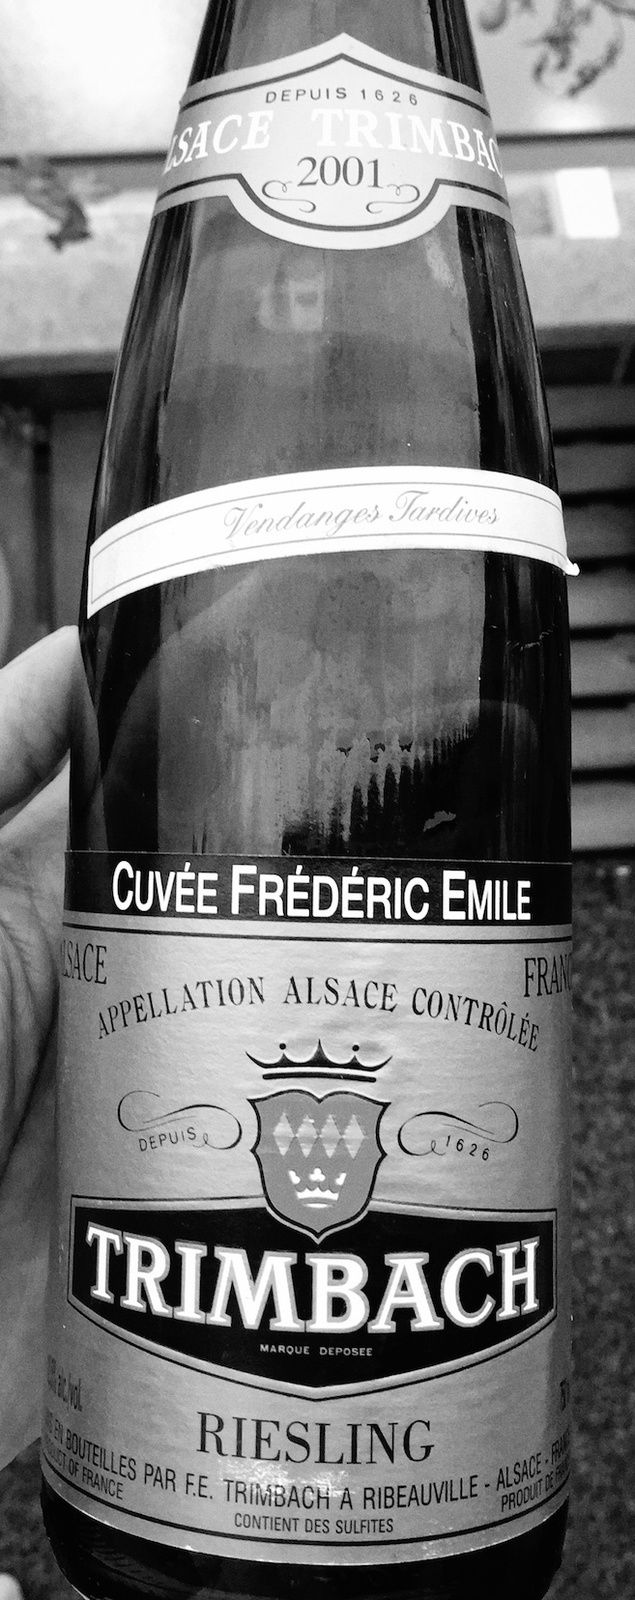 Trimbach - Riesling Frederic Emile VT 2001